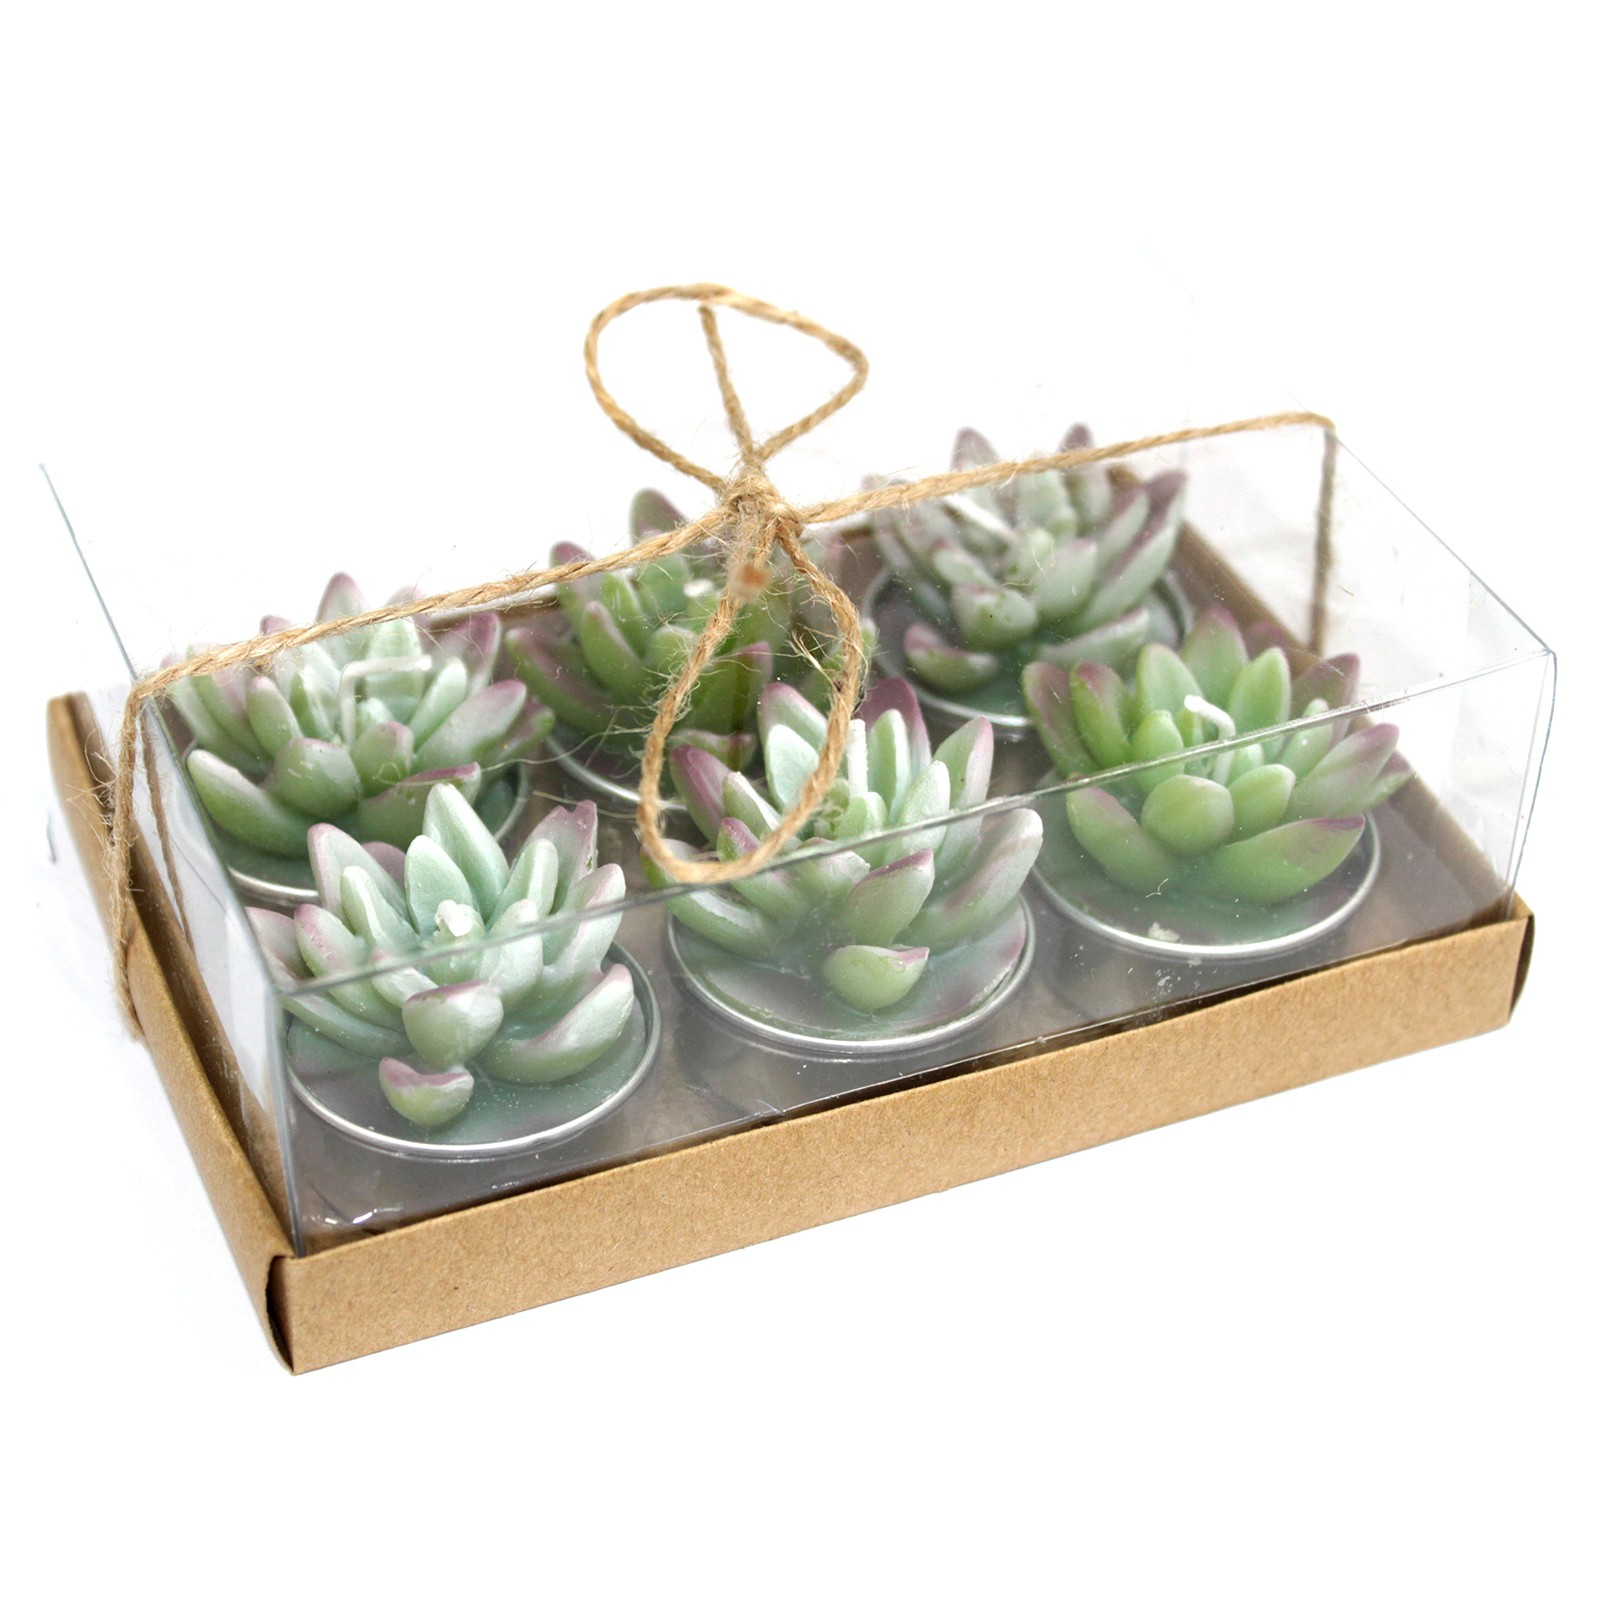 Set of 6 Agave Cactus Tealights in Gift Box